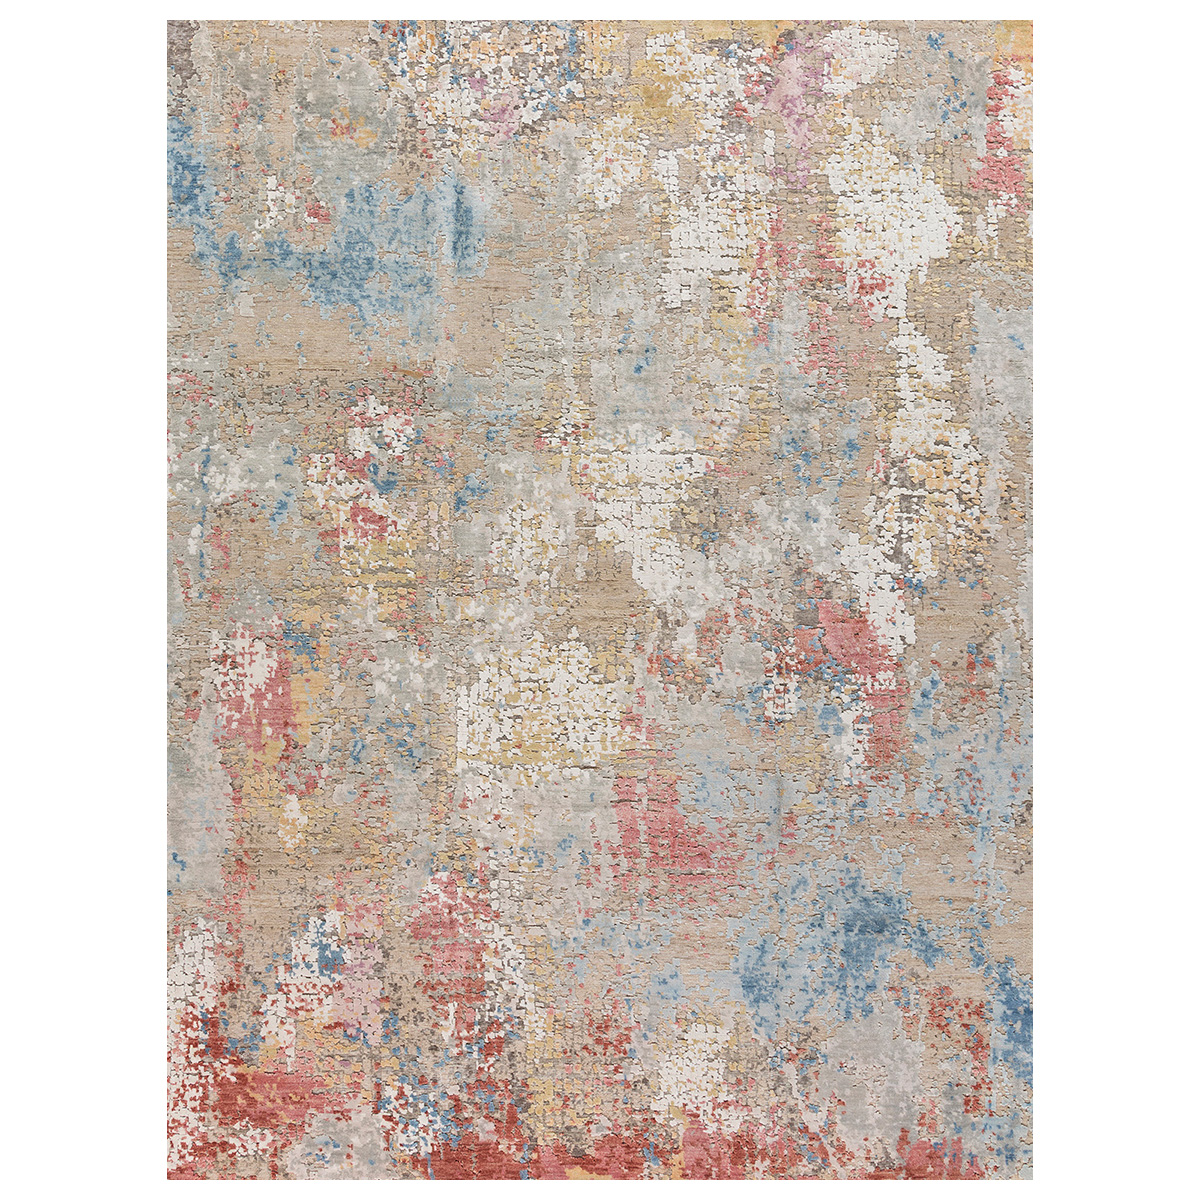 Ebanista-Transitional-Rug-EB-T109A-W.BS_.S-1-resized